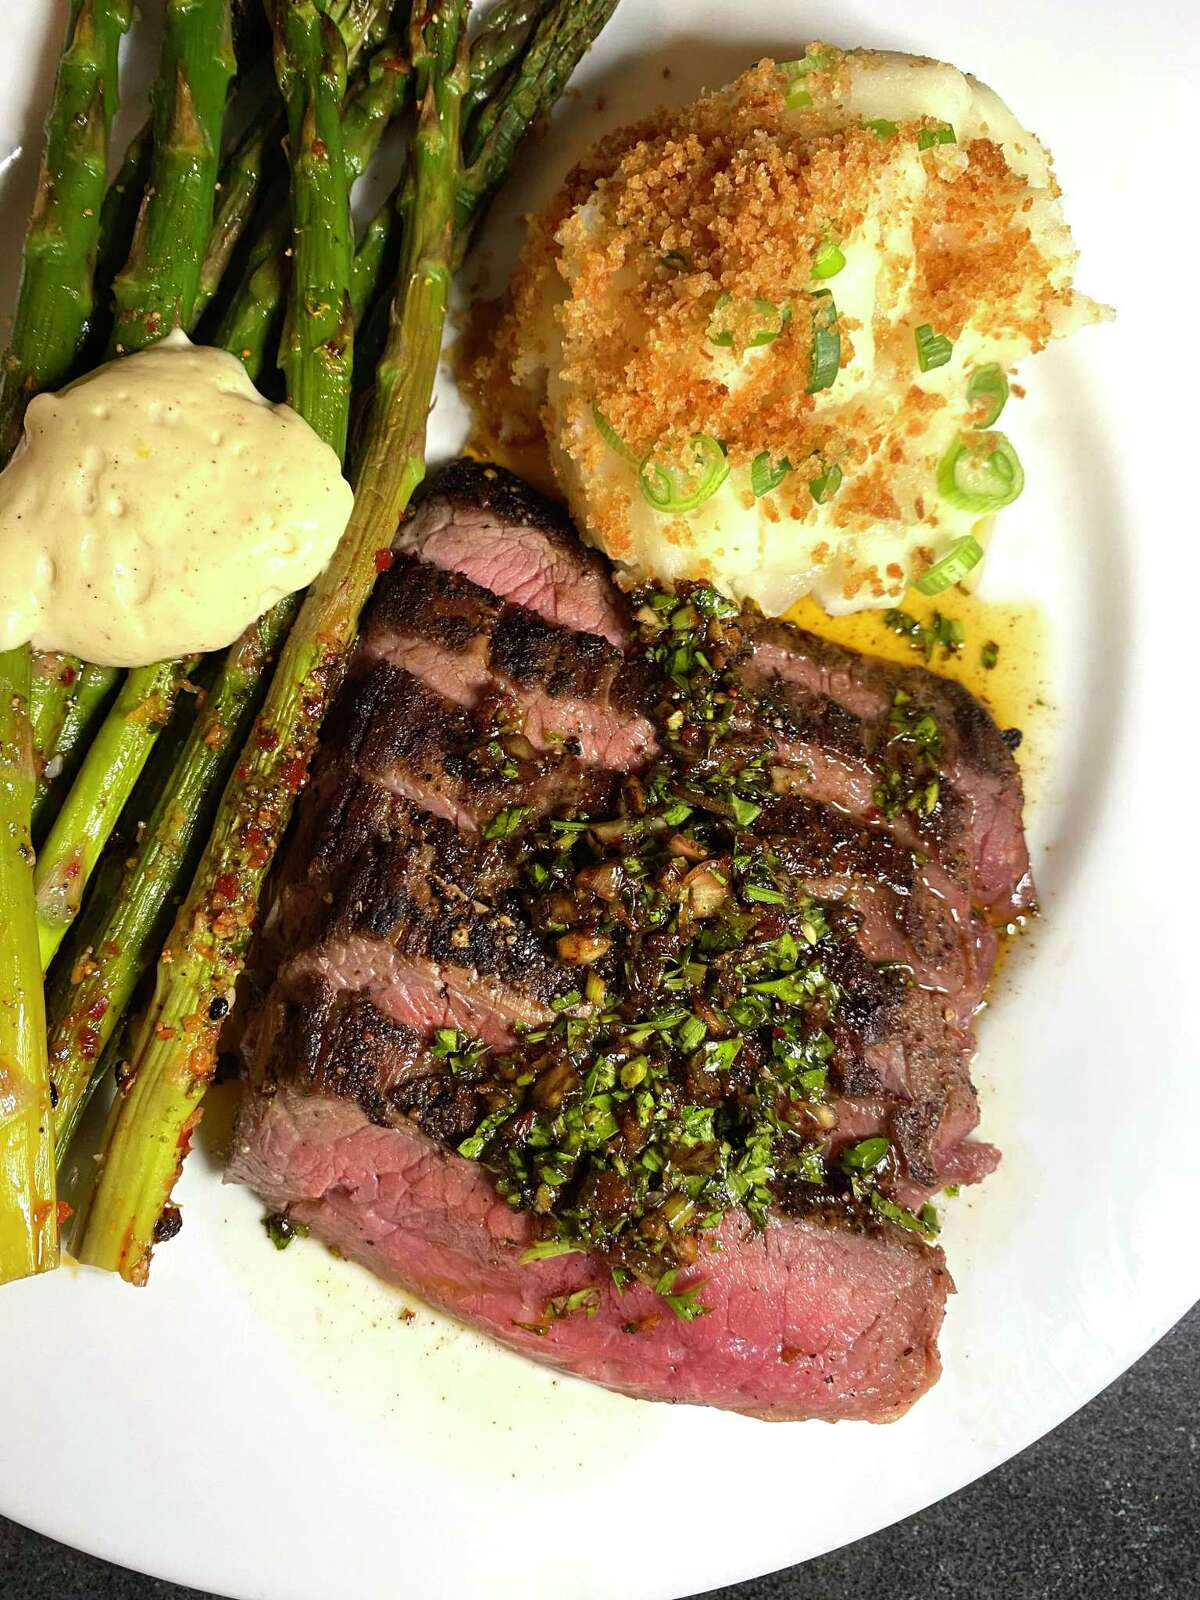 A recent Feed Me To-Go dinner from Clementine included grilled flank steak, asparagus and mashed potatoes.